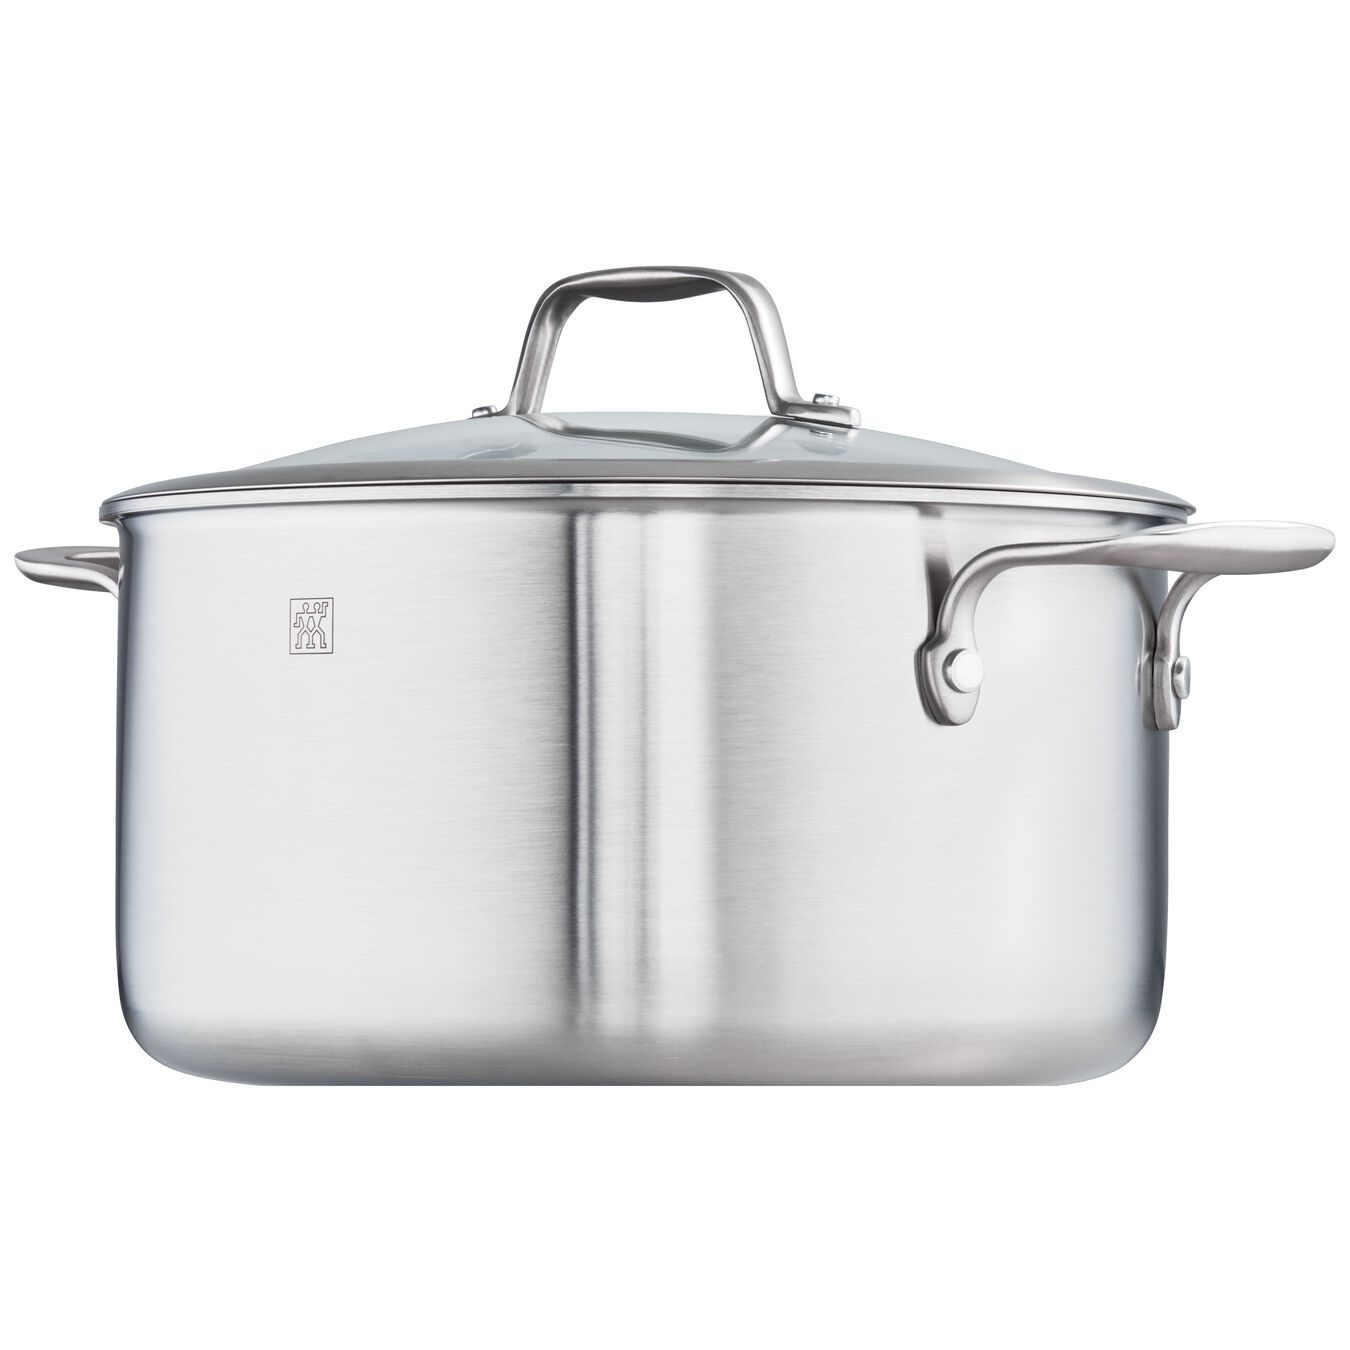 3-ply 6-qt Stainless Steel Dutch Oven,,large 2